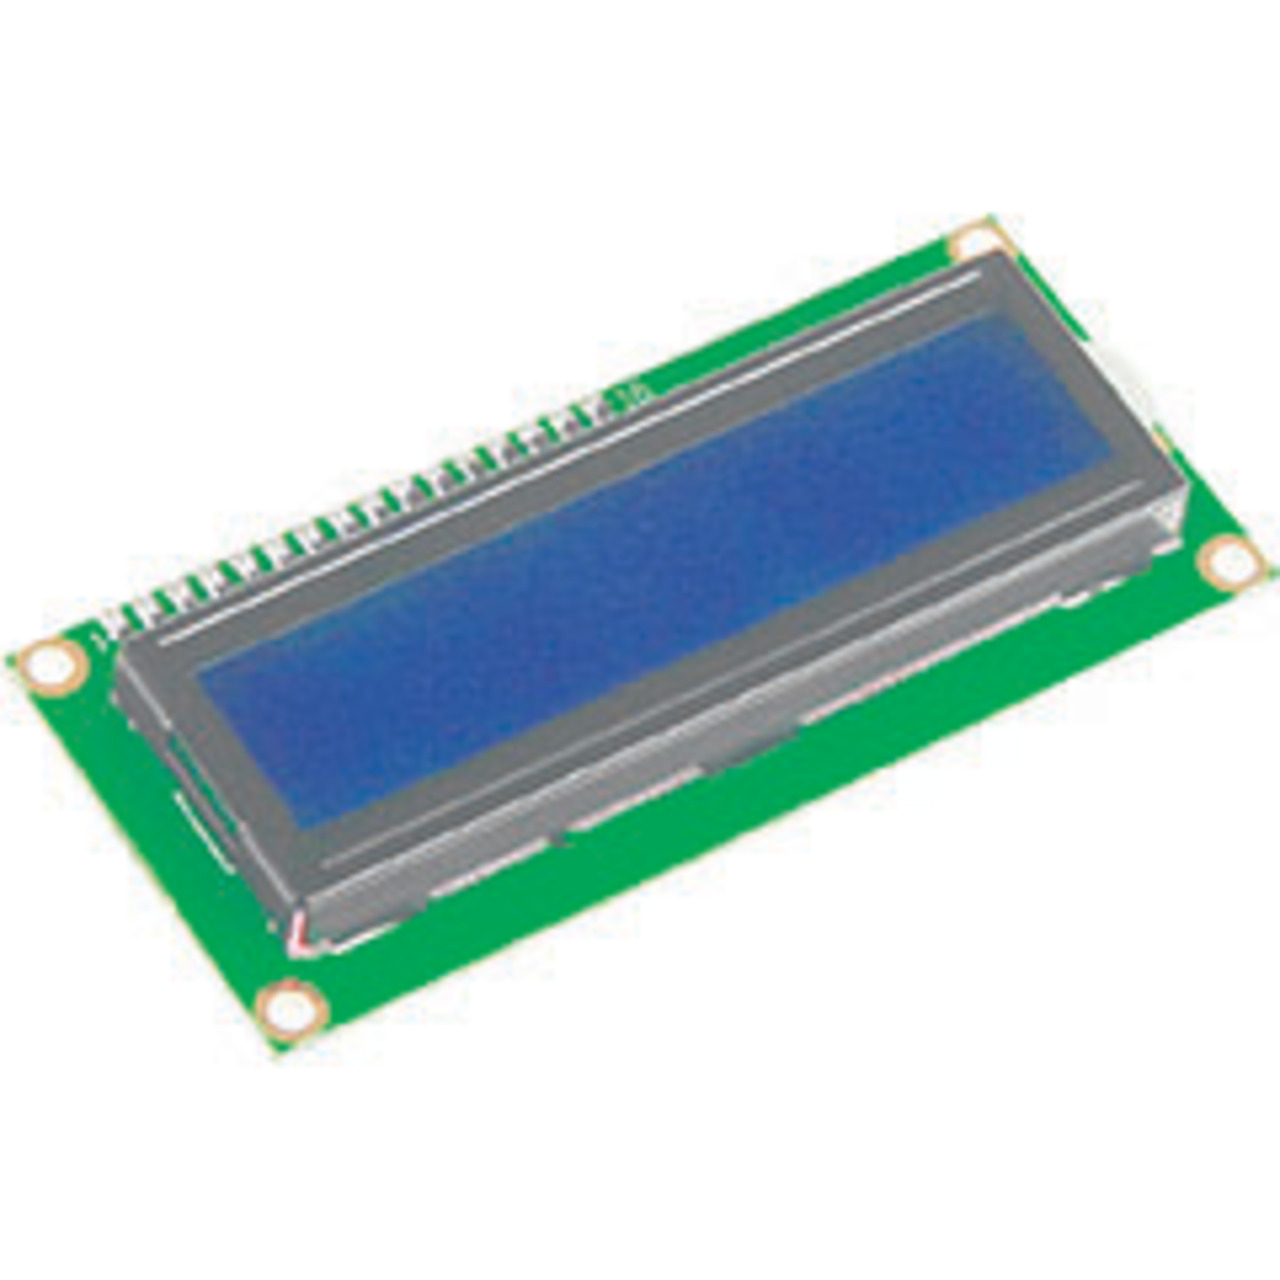 JOY-iT Display-Modul 6-6 cm (2-6) I2C- für Raspberry Pi